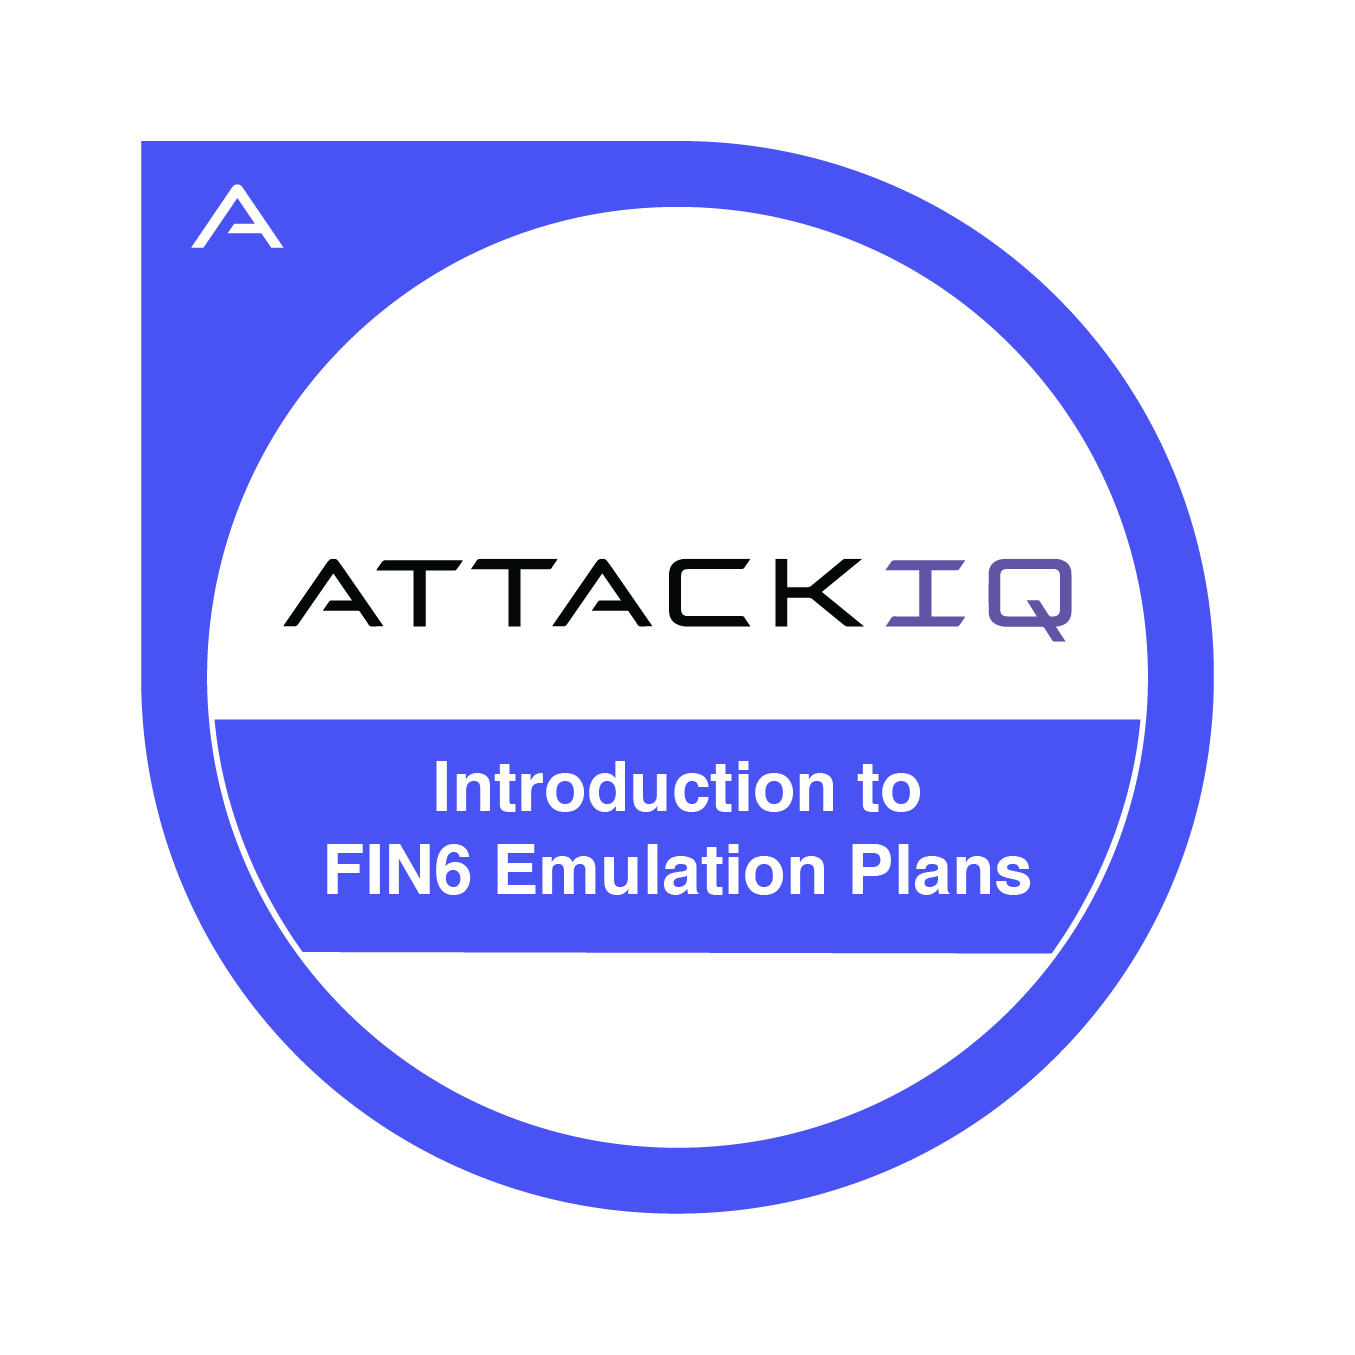 Introduction To FIN6 Emulation Plans